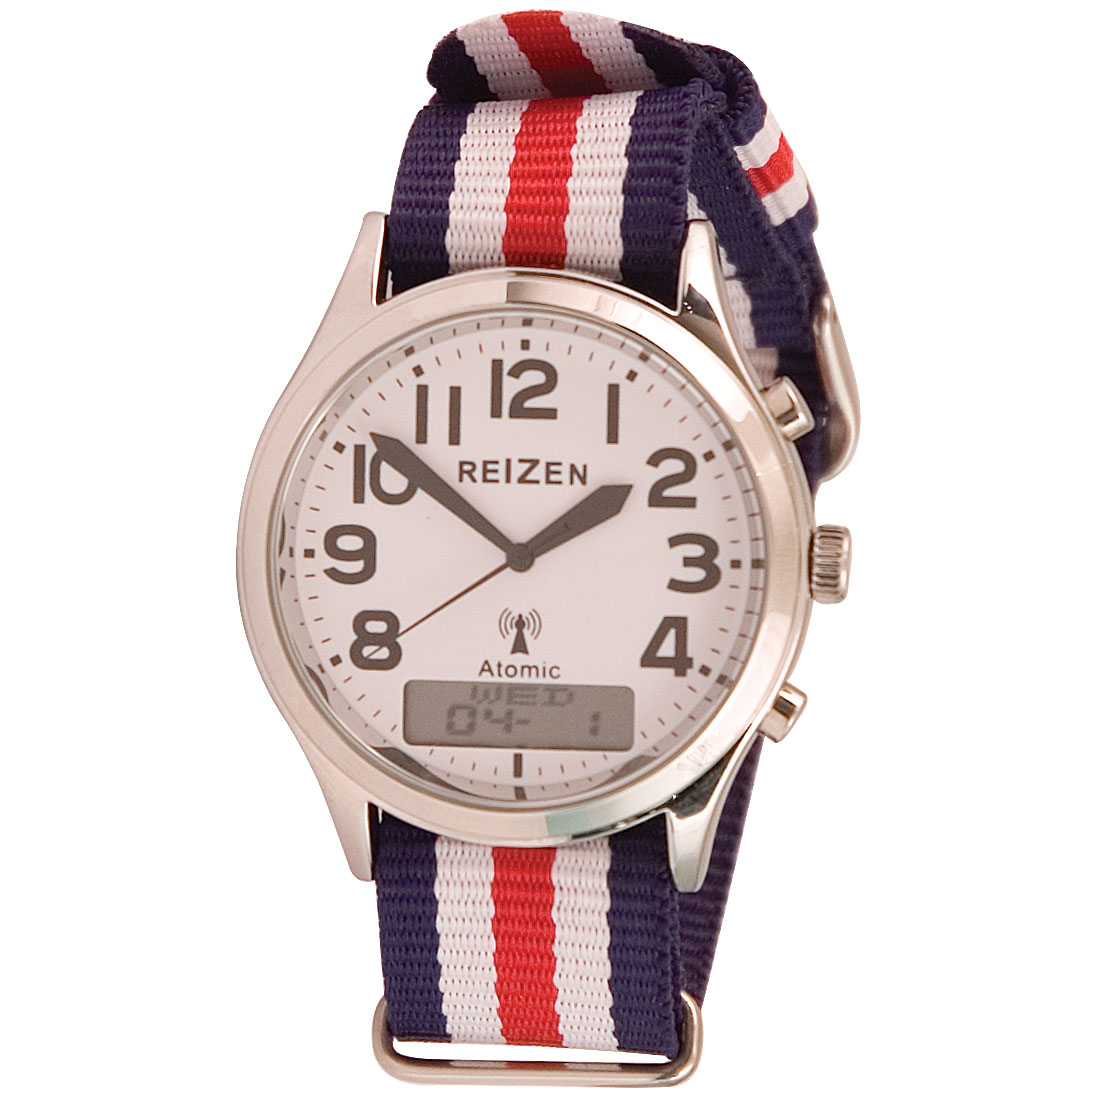 Reizen Low-Vision Ana-Digit Atomic Watch- Red-White-Blue Striped Band